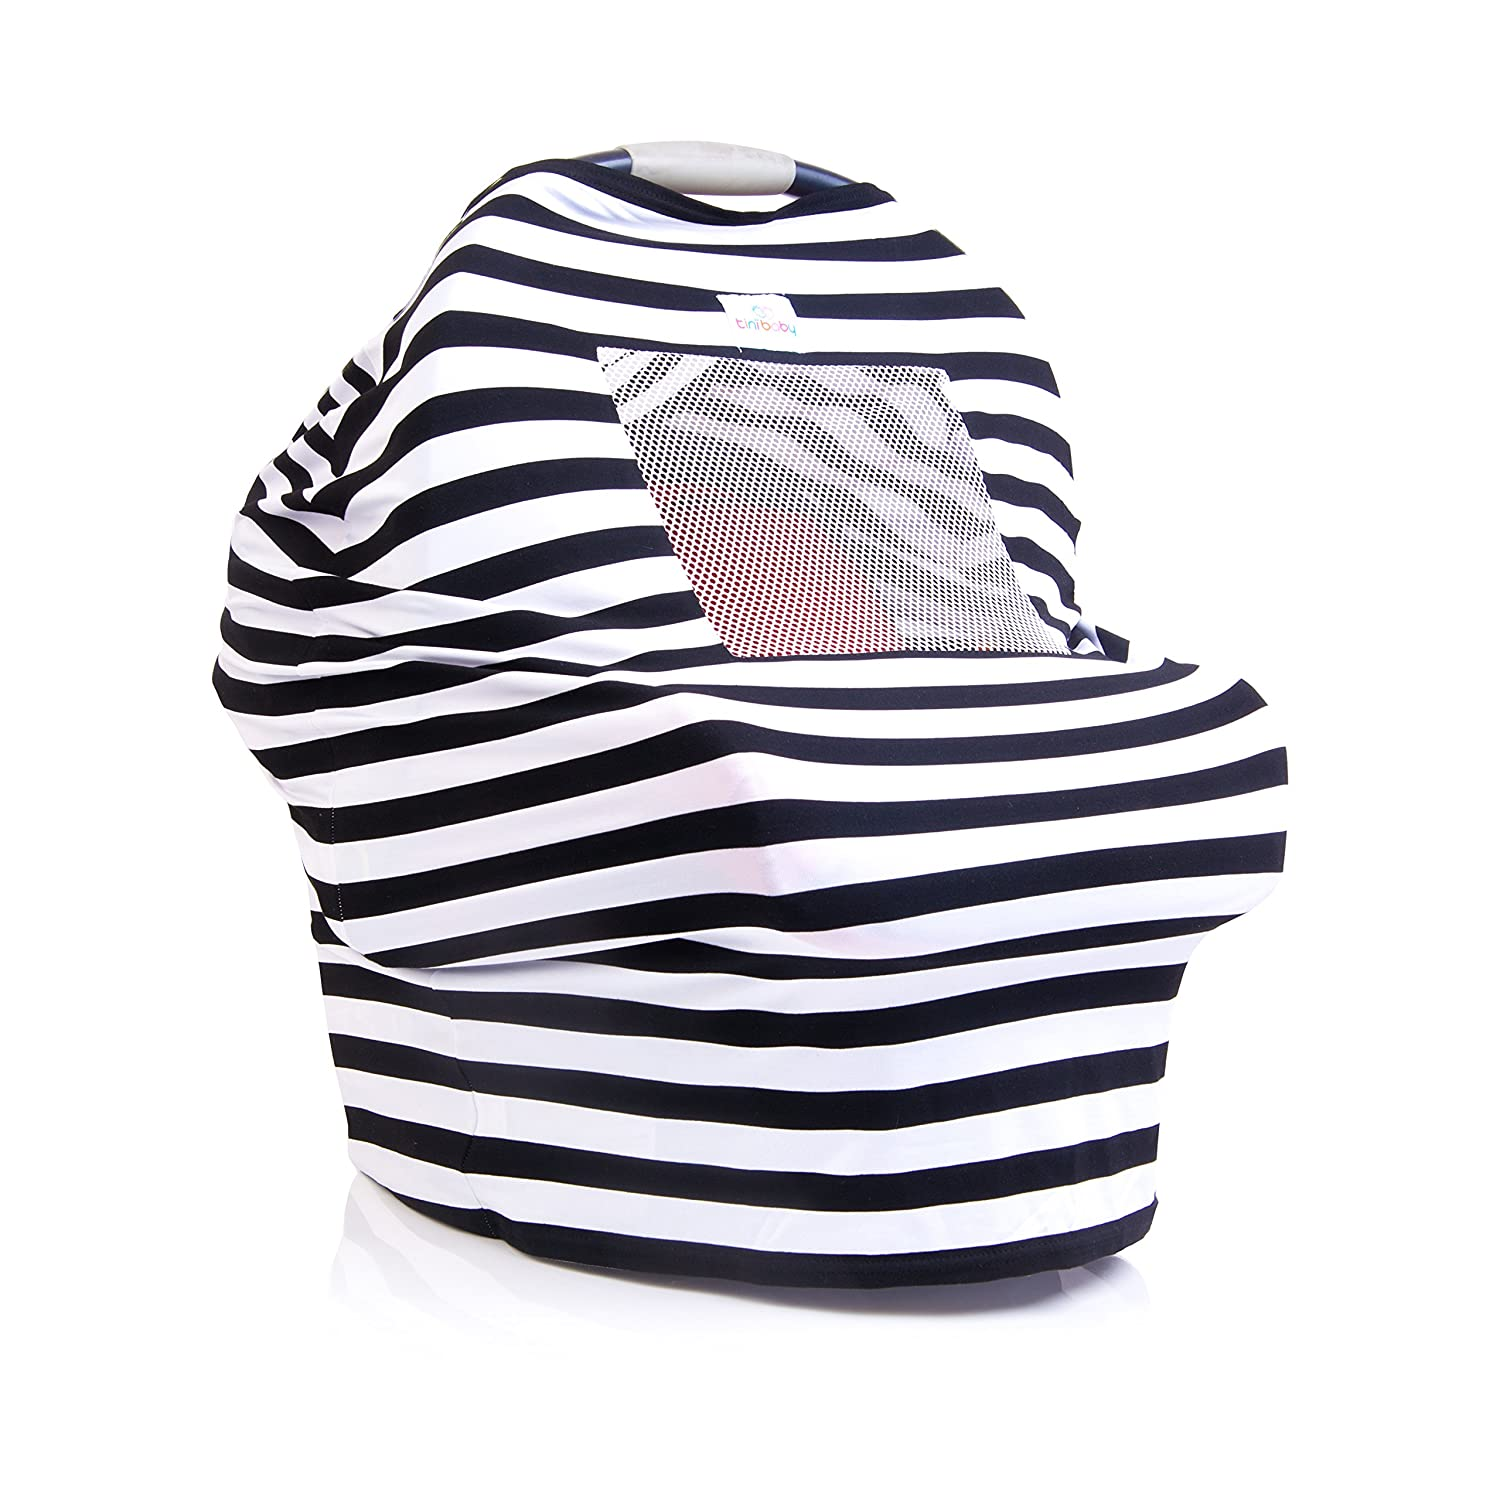 Baby Car Seat Canopy With Breathable Mesh, Safe, Soft, & Stretchy, Nursing Cover Best for Breastfeeding Infant Babies, Boy or Girl, Multi-Use as Scarf, Stroller, Chair, Cart Covers w bag (B&W) tini baby 4N1BWM1017